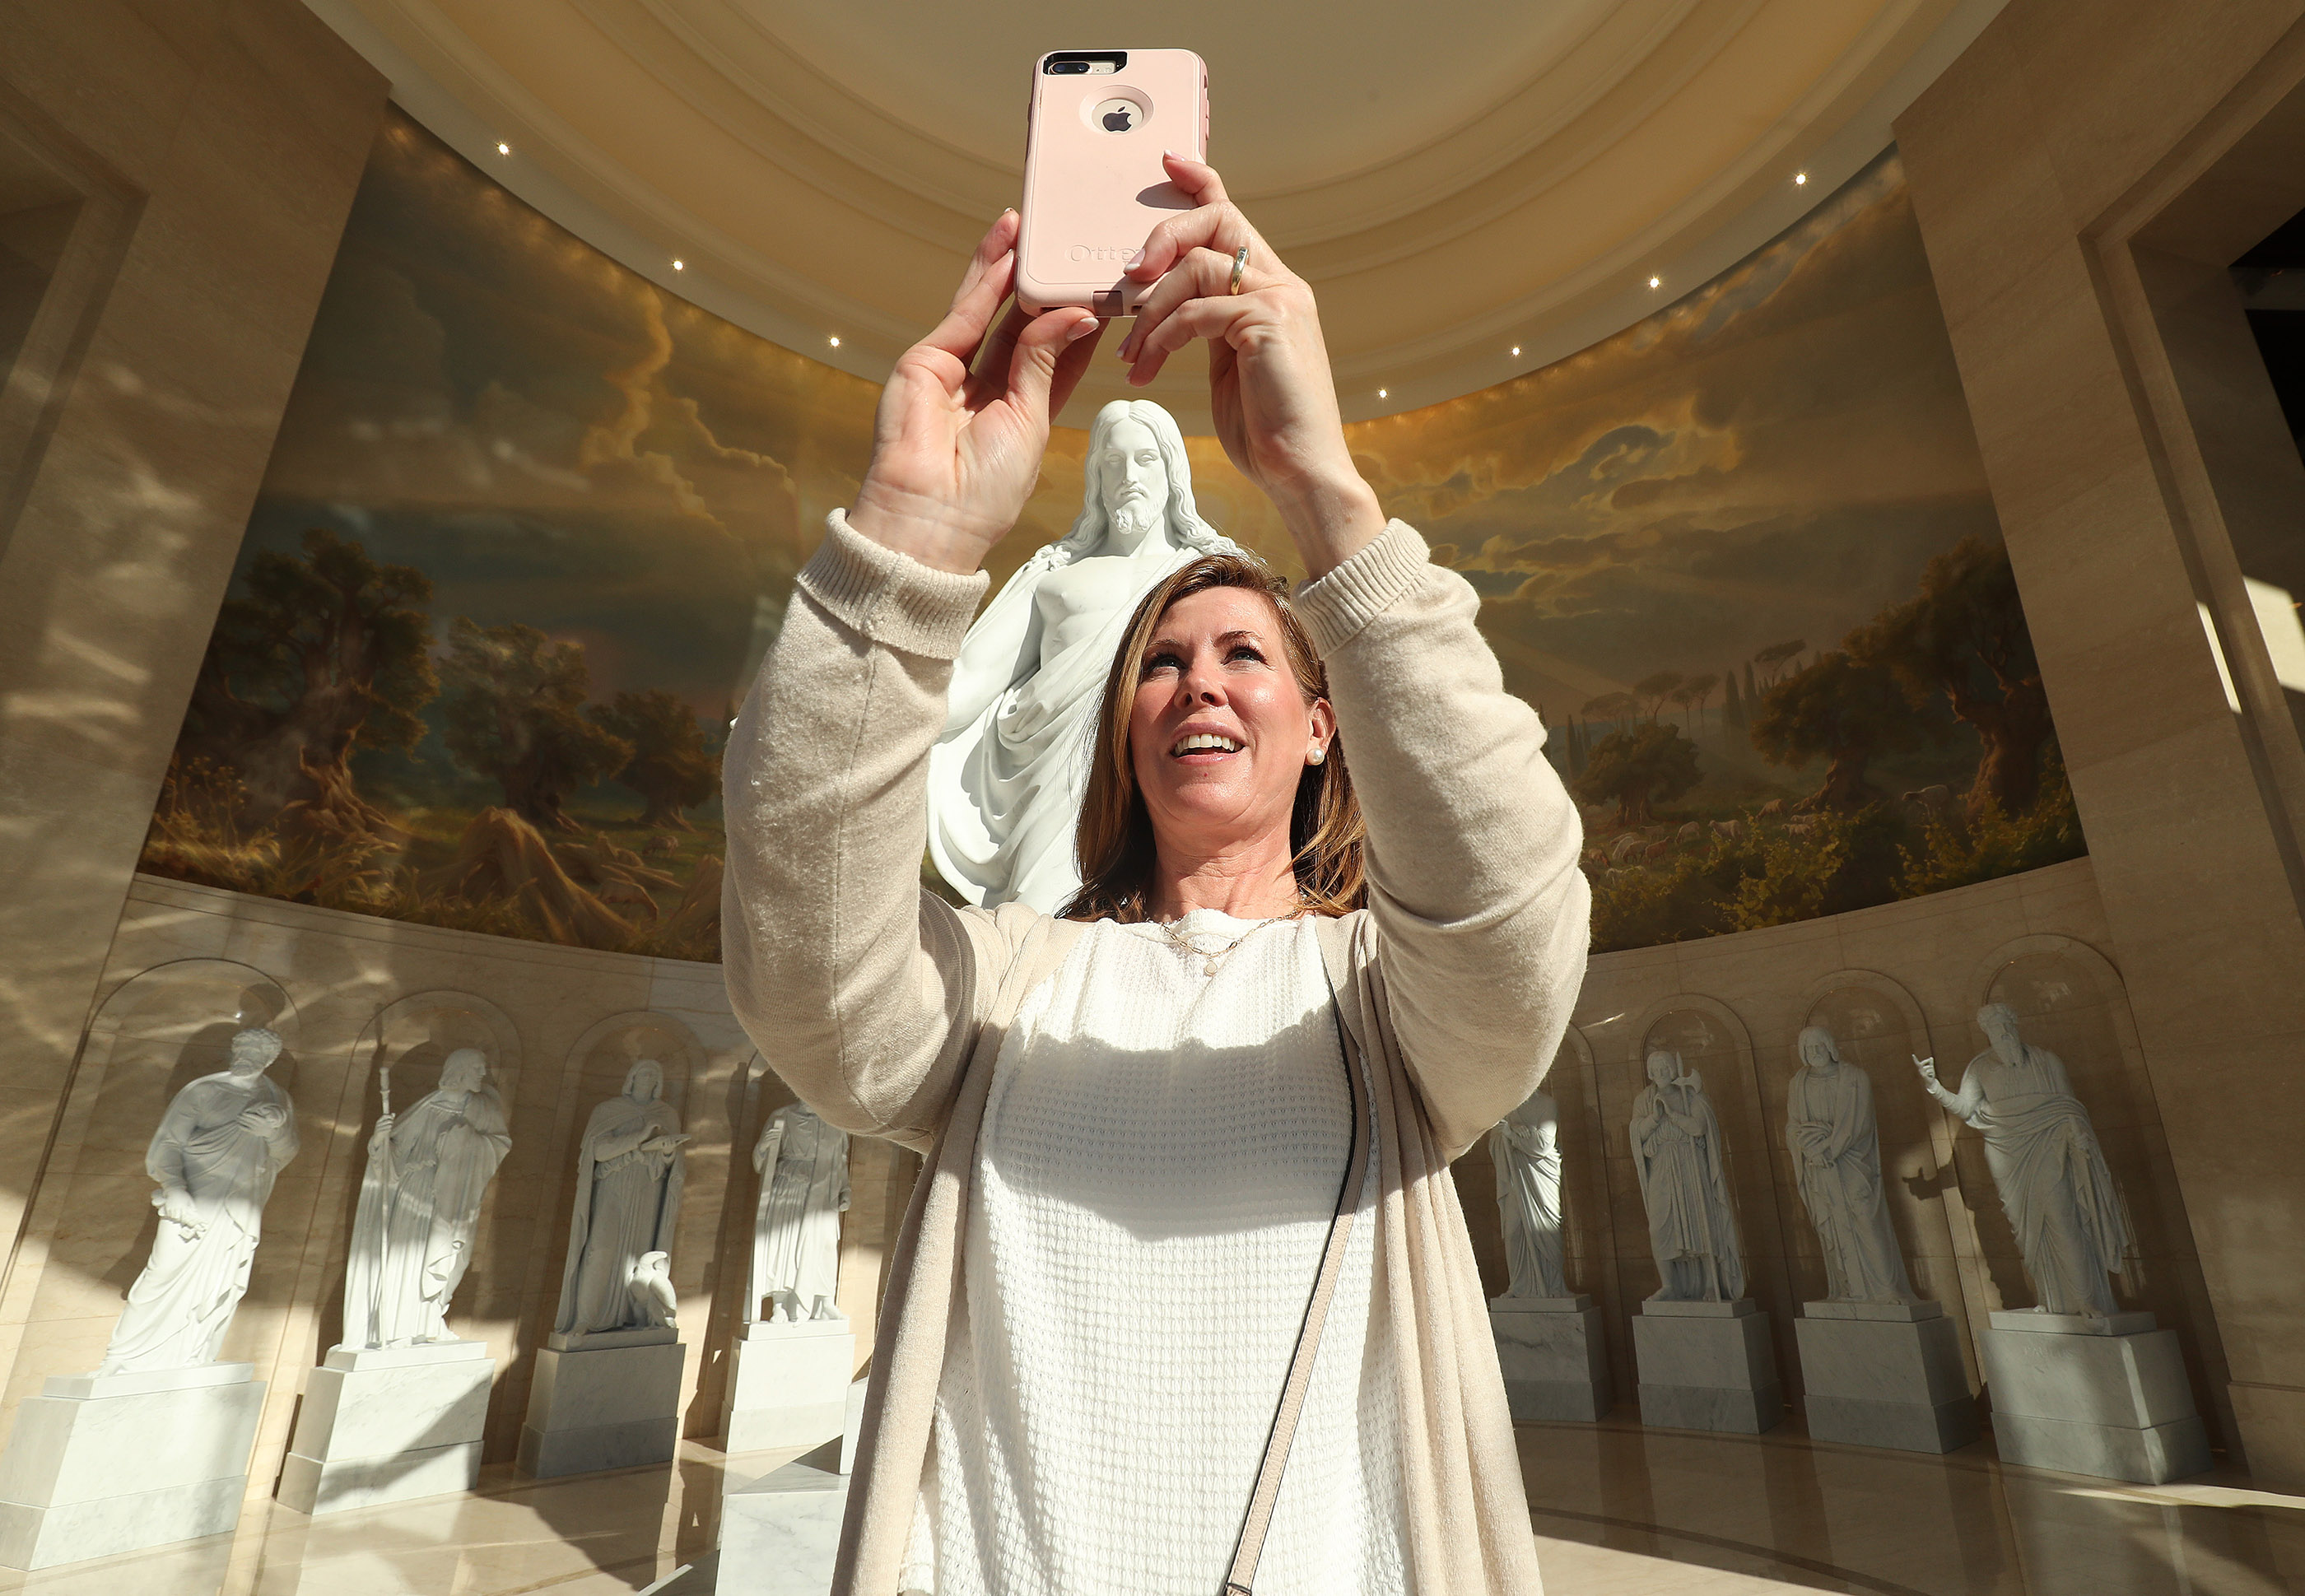 Christie Latham takes a photo in the Rome Italy Temple Visitors' Center in Rome on Tuesday, March 12, 2019.